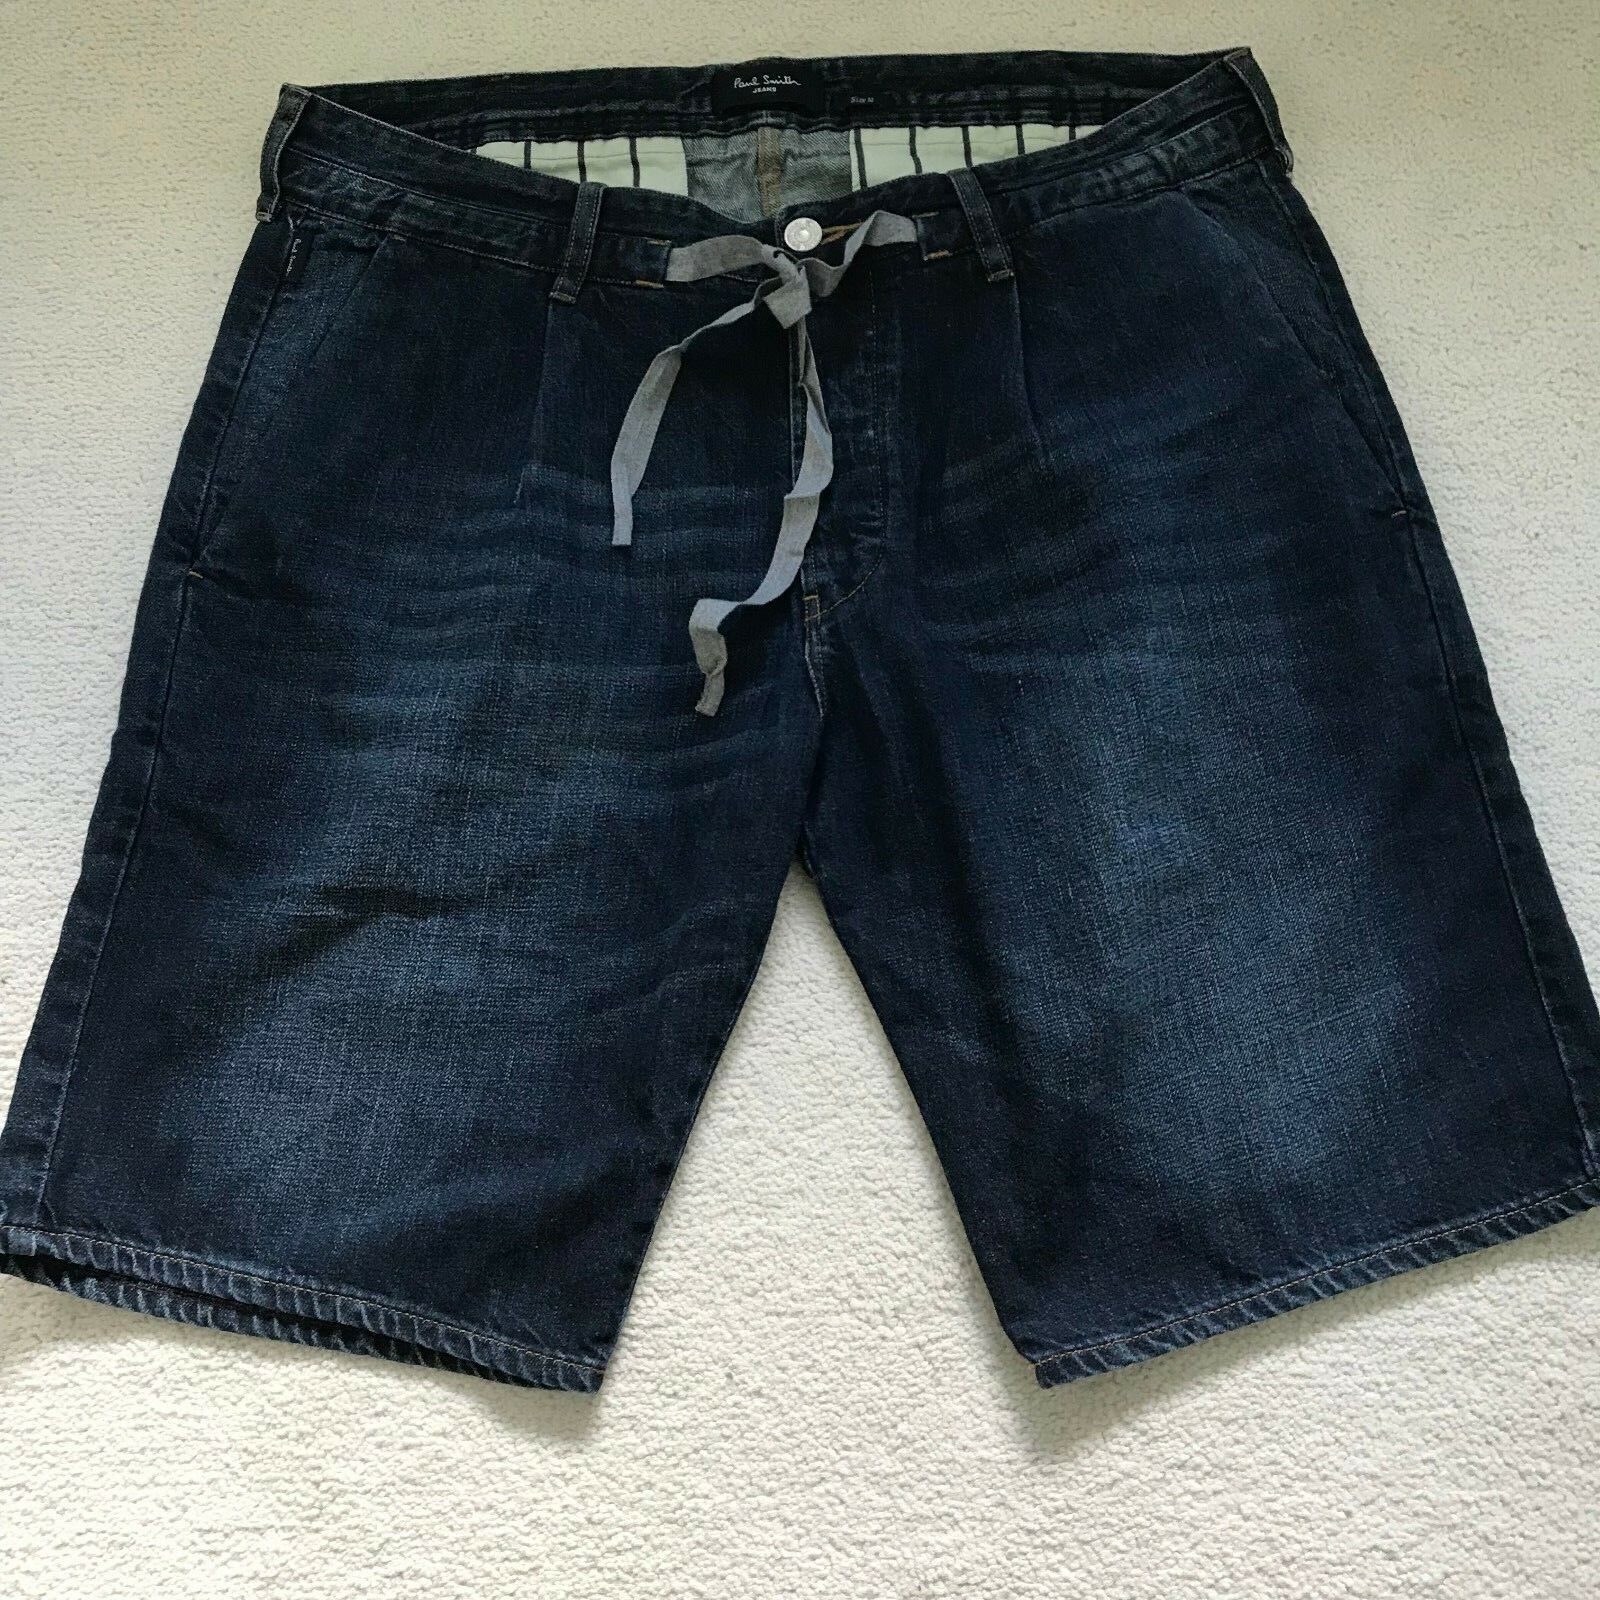 PAUL SMITH Slim Fit Pleated Shorts with tie cord - Size 32R